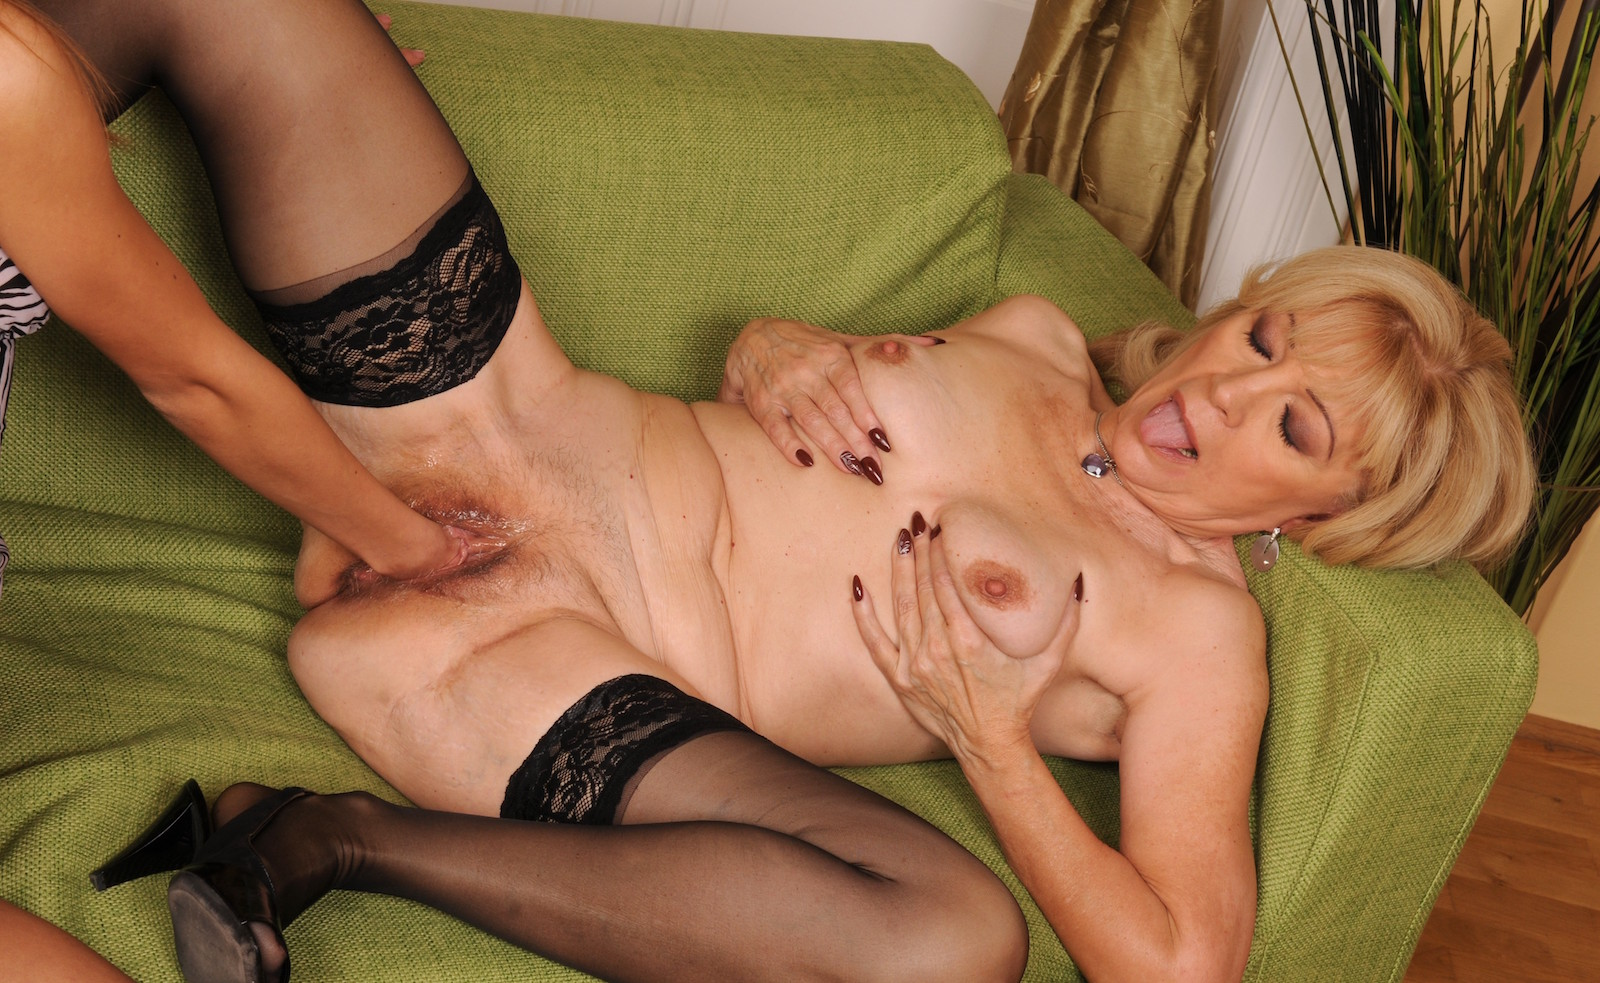 Pin on hot milf's cougars gilf's